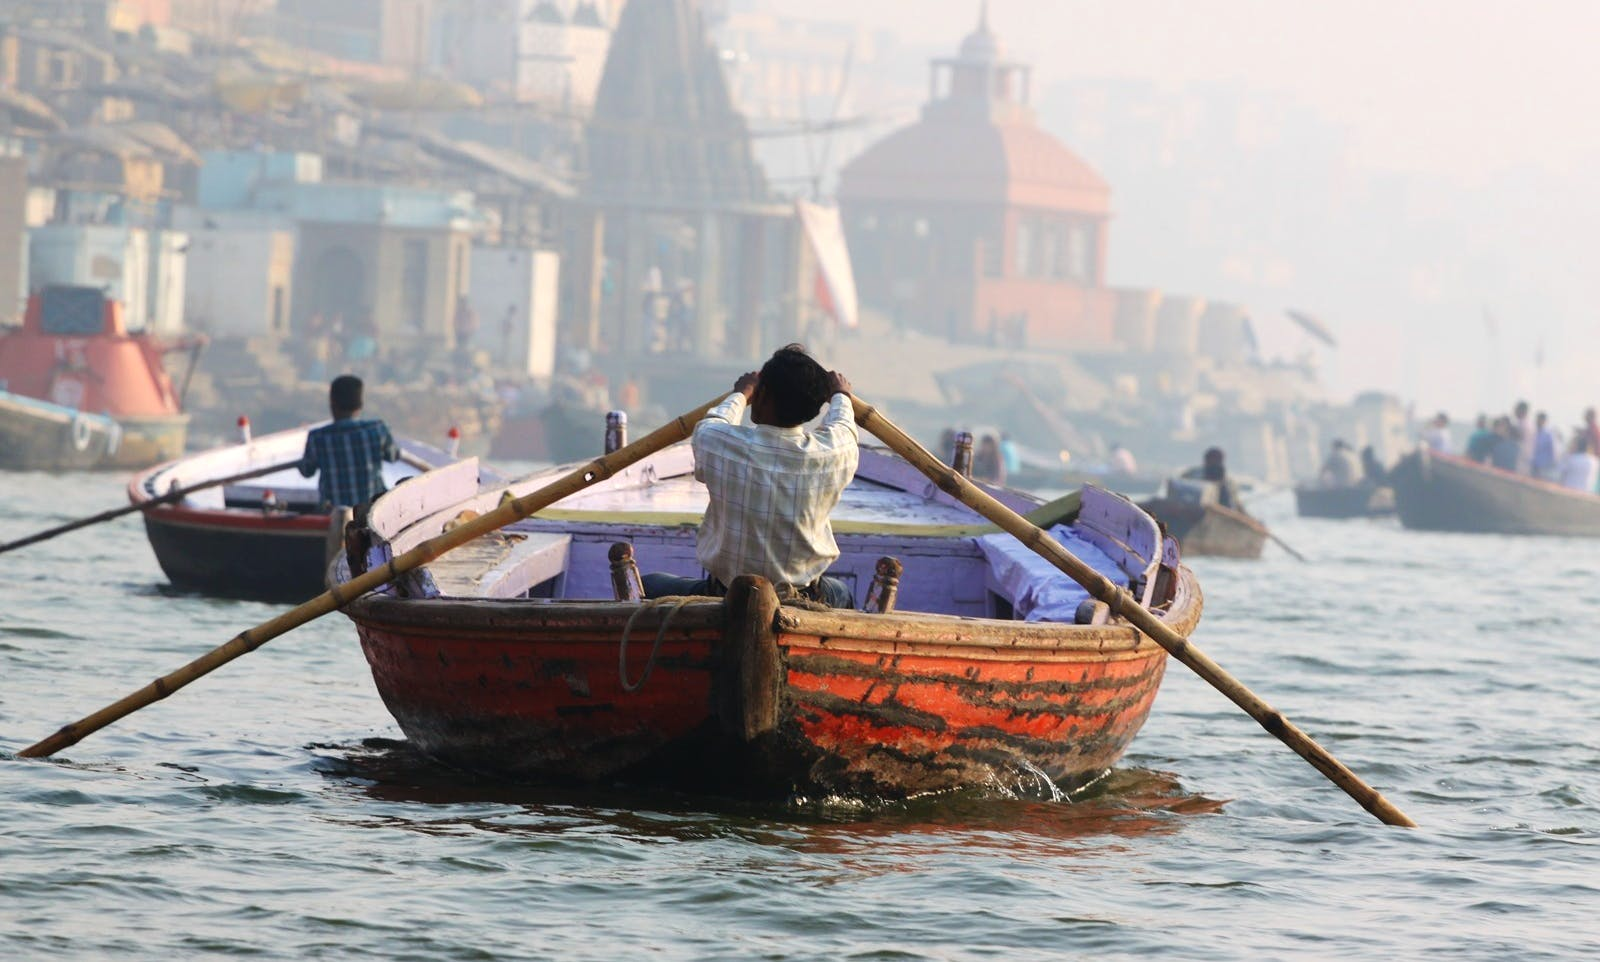 Excellent day out on the boat in Varanasi, India